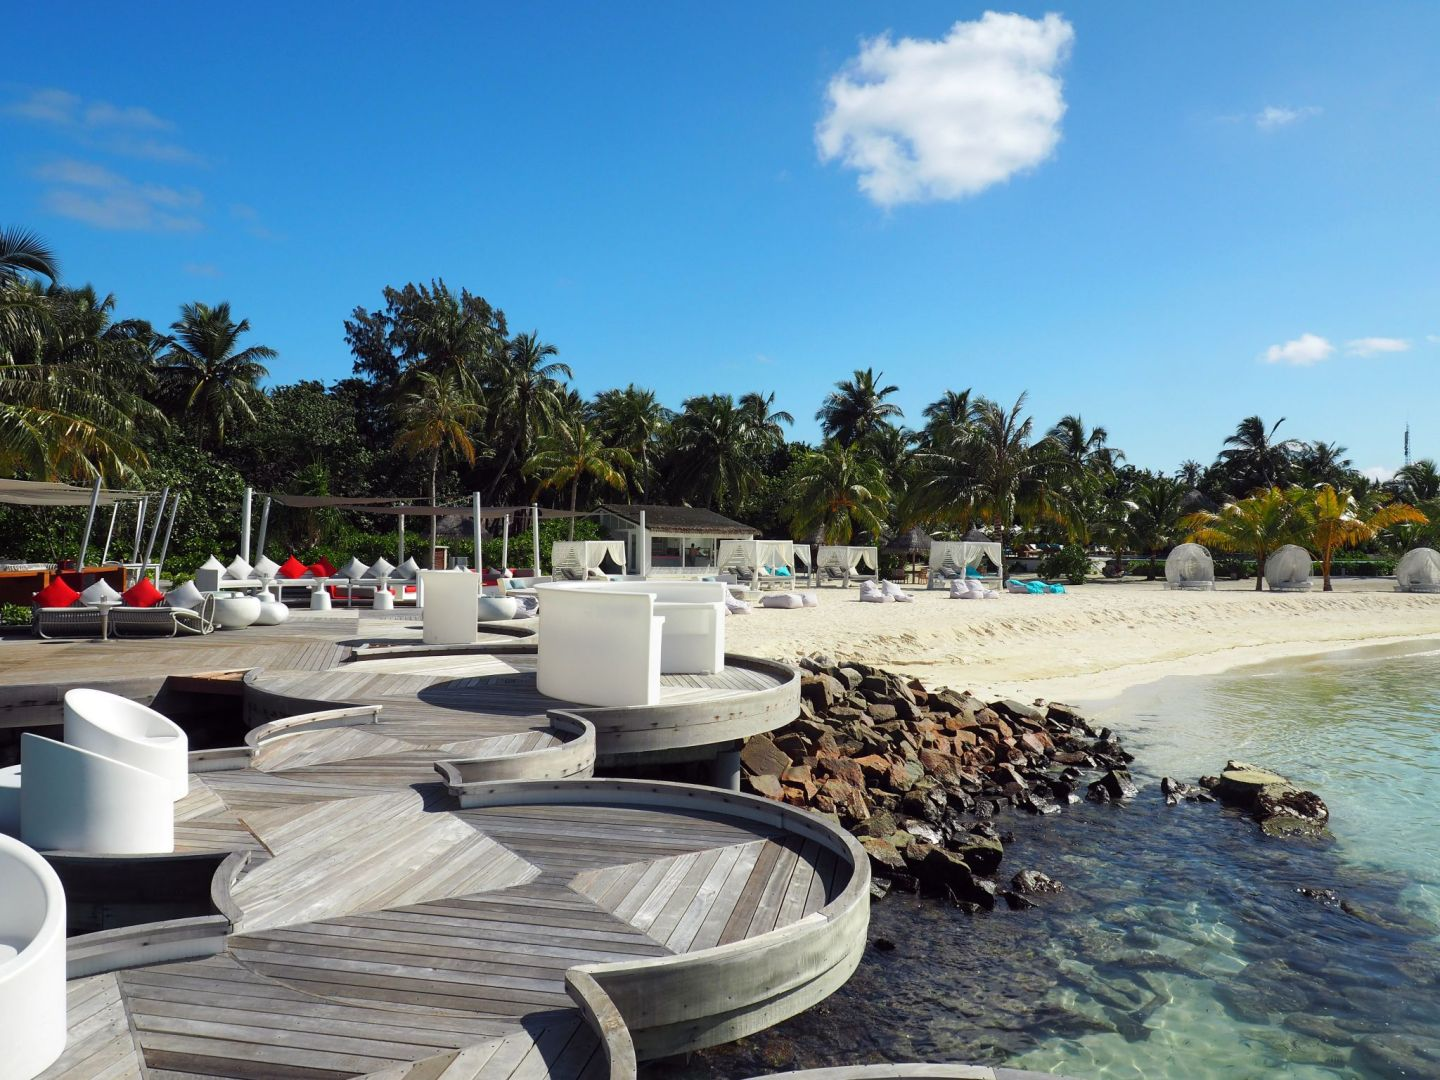 Outdoor seating at Beach Rouge LUX Maldives